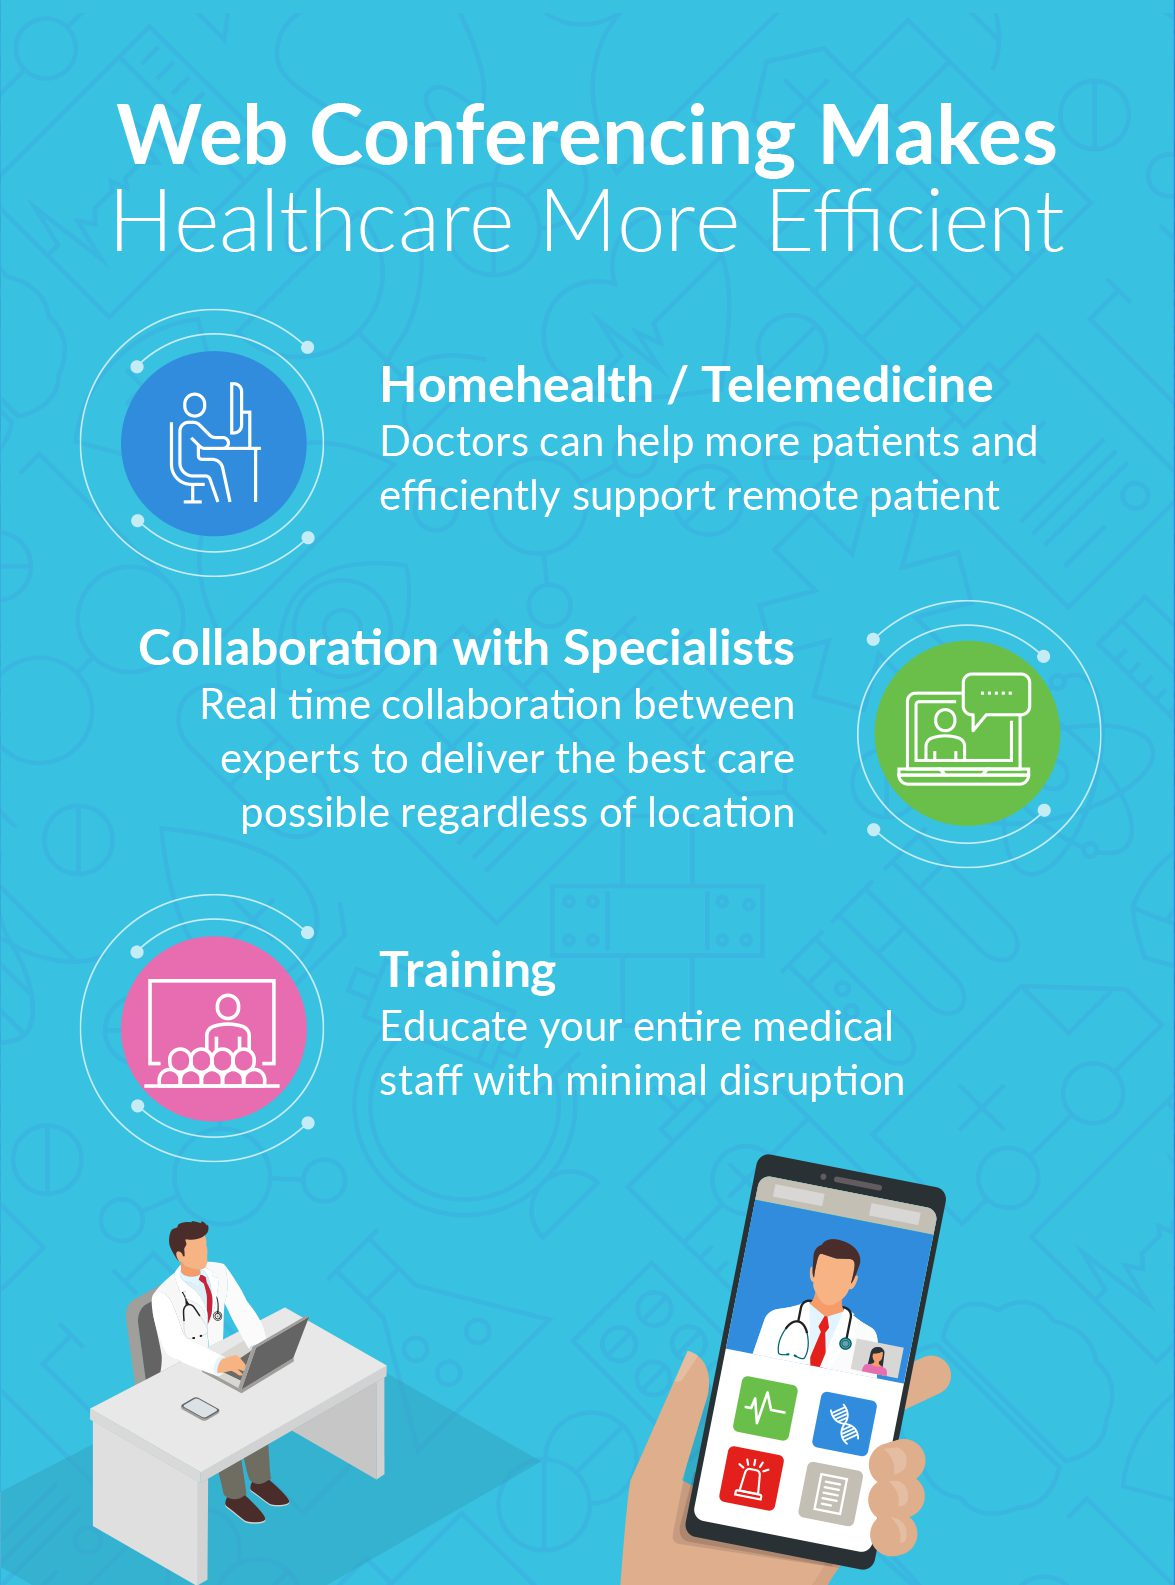 Improving Healthcare Productivity with Web Conferencing and Smarter Tools